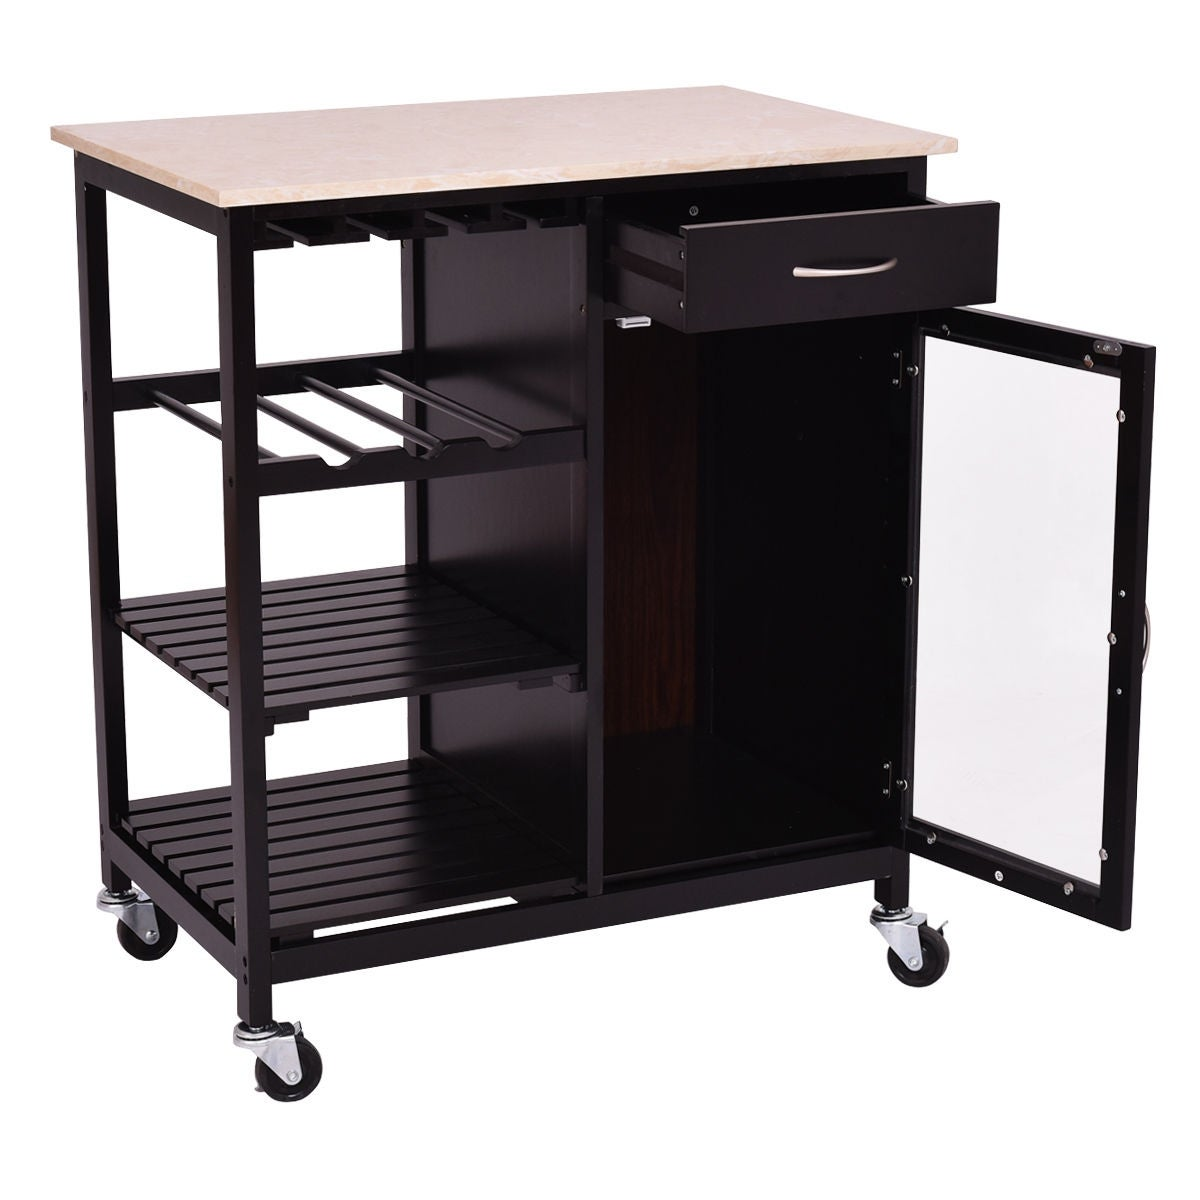 top organization category bath carts store cart bed islands island stainless portable crosley kitchen rolling beyond